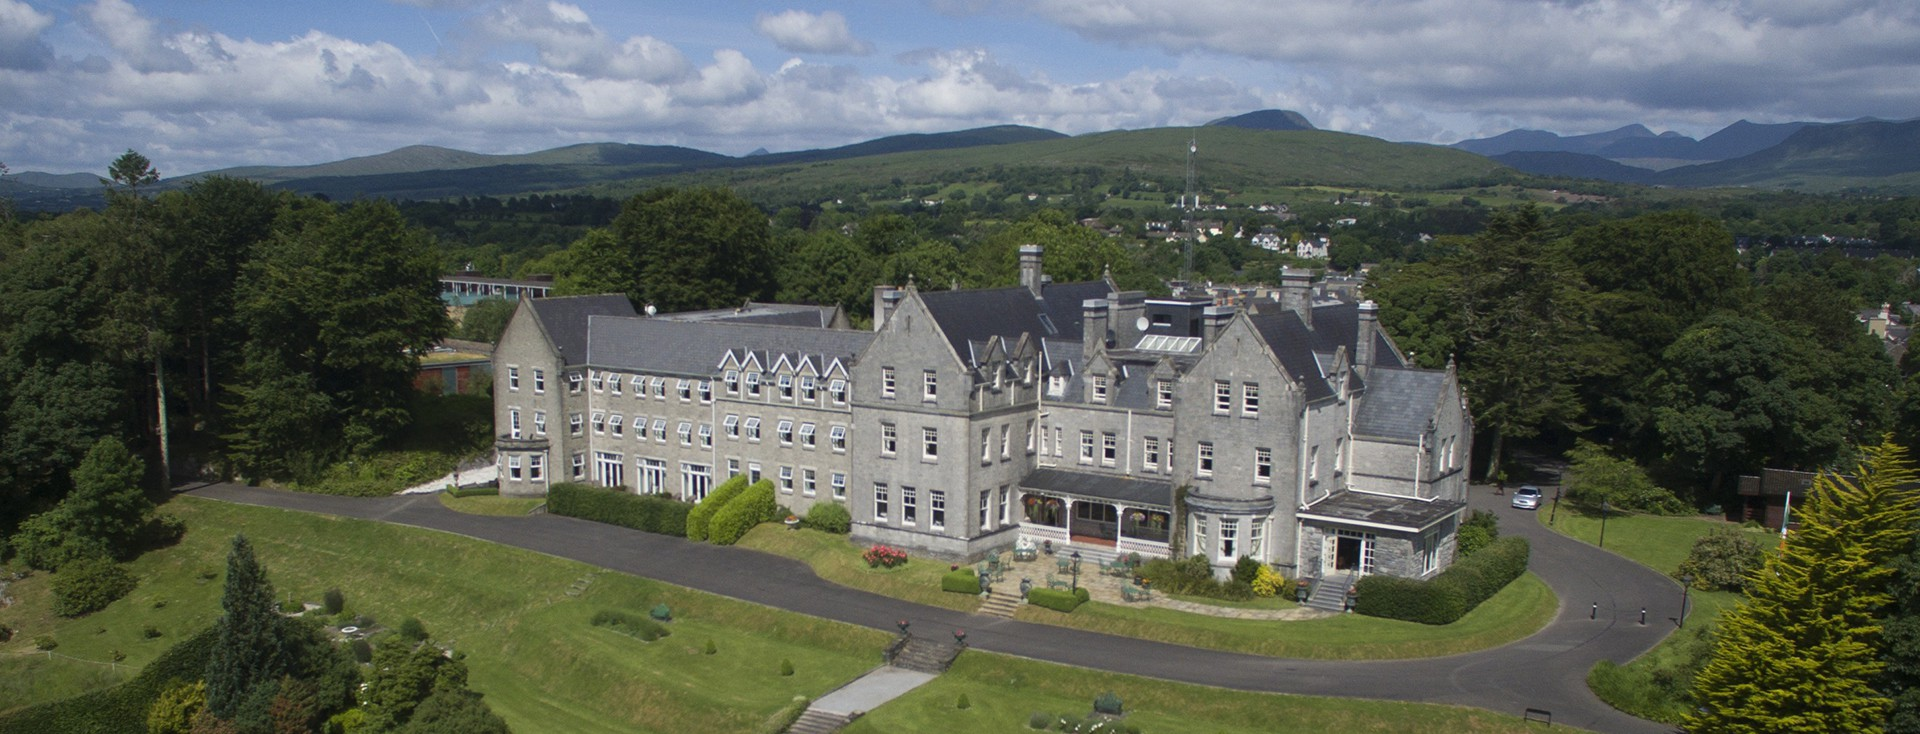 Park hotel kenmare boutique hotel in kenmare ireland - Kenmare hotels with swimming pools ...